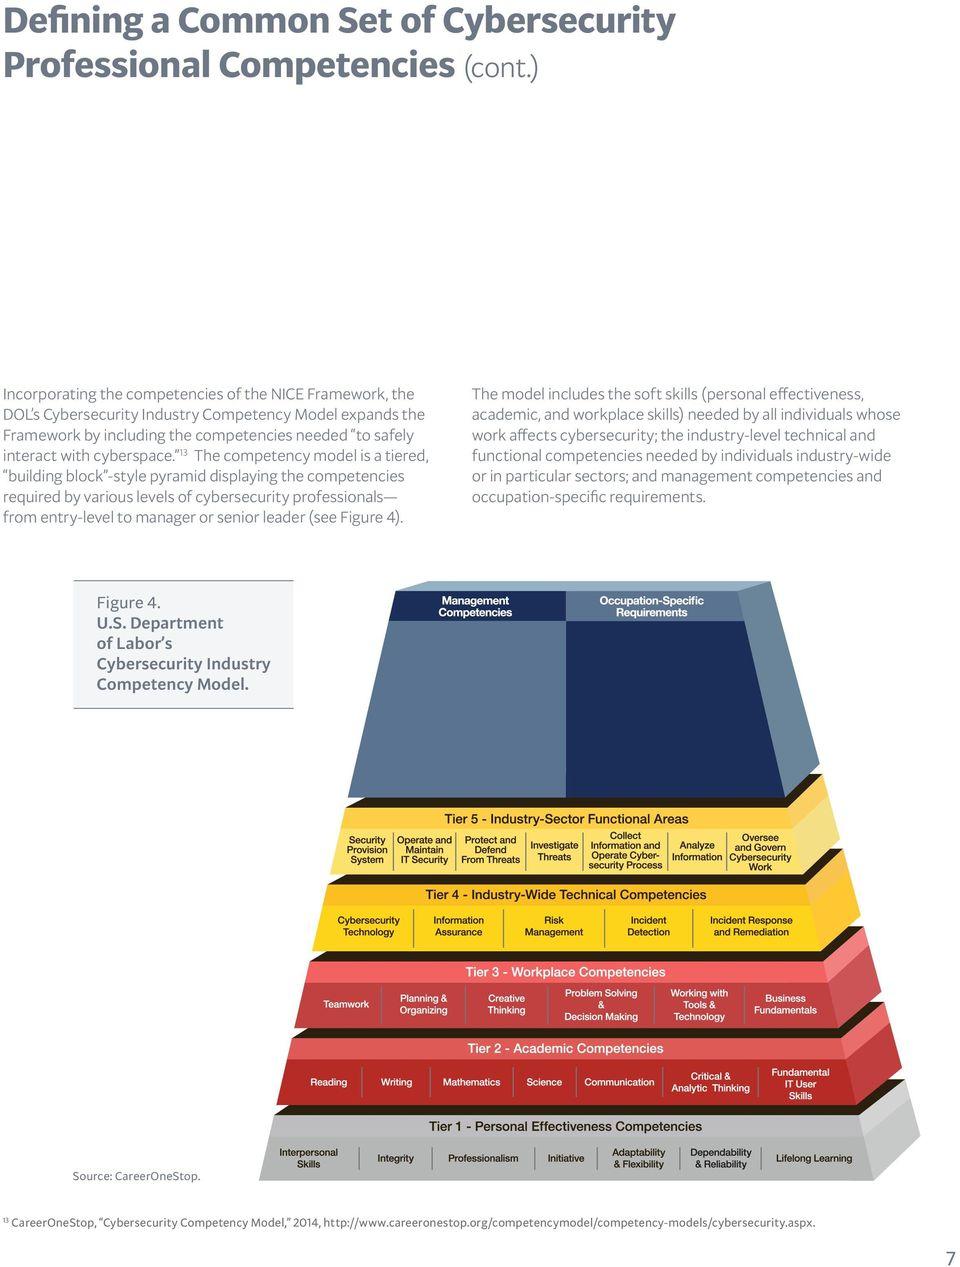 13 The competency model is a tiered, building block -style pyramid displaying the competencies required by various levels of cybersecurity professionals from entry-level to manager or senior leader